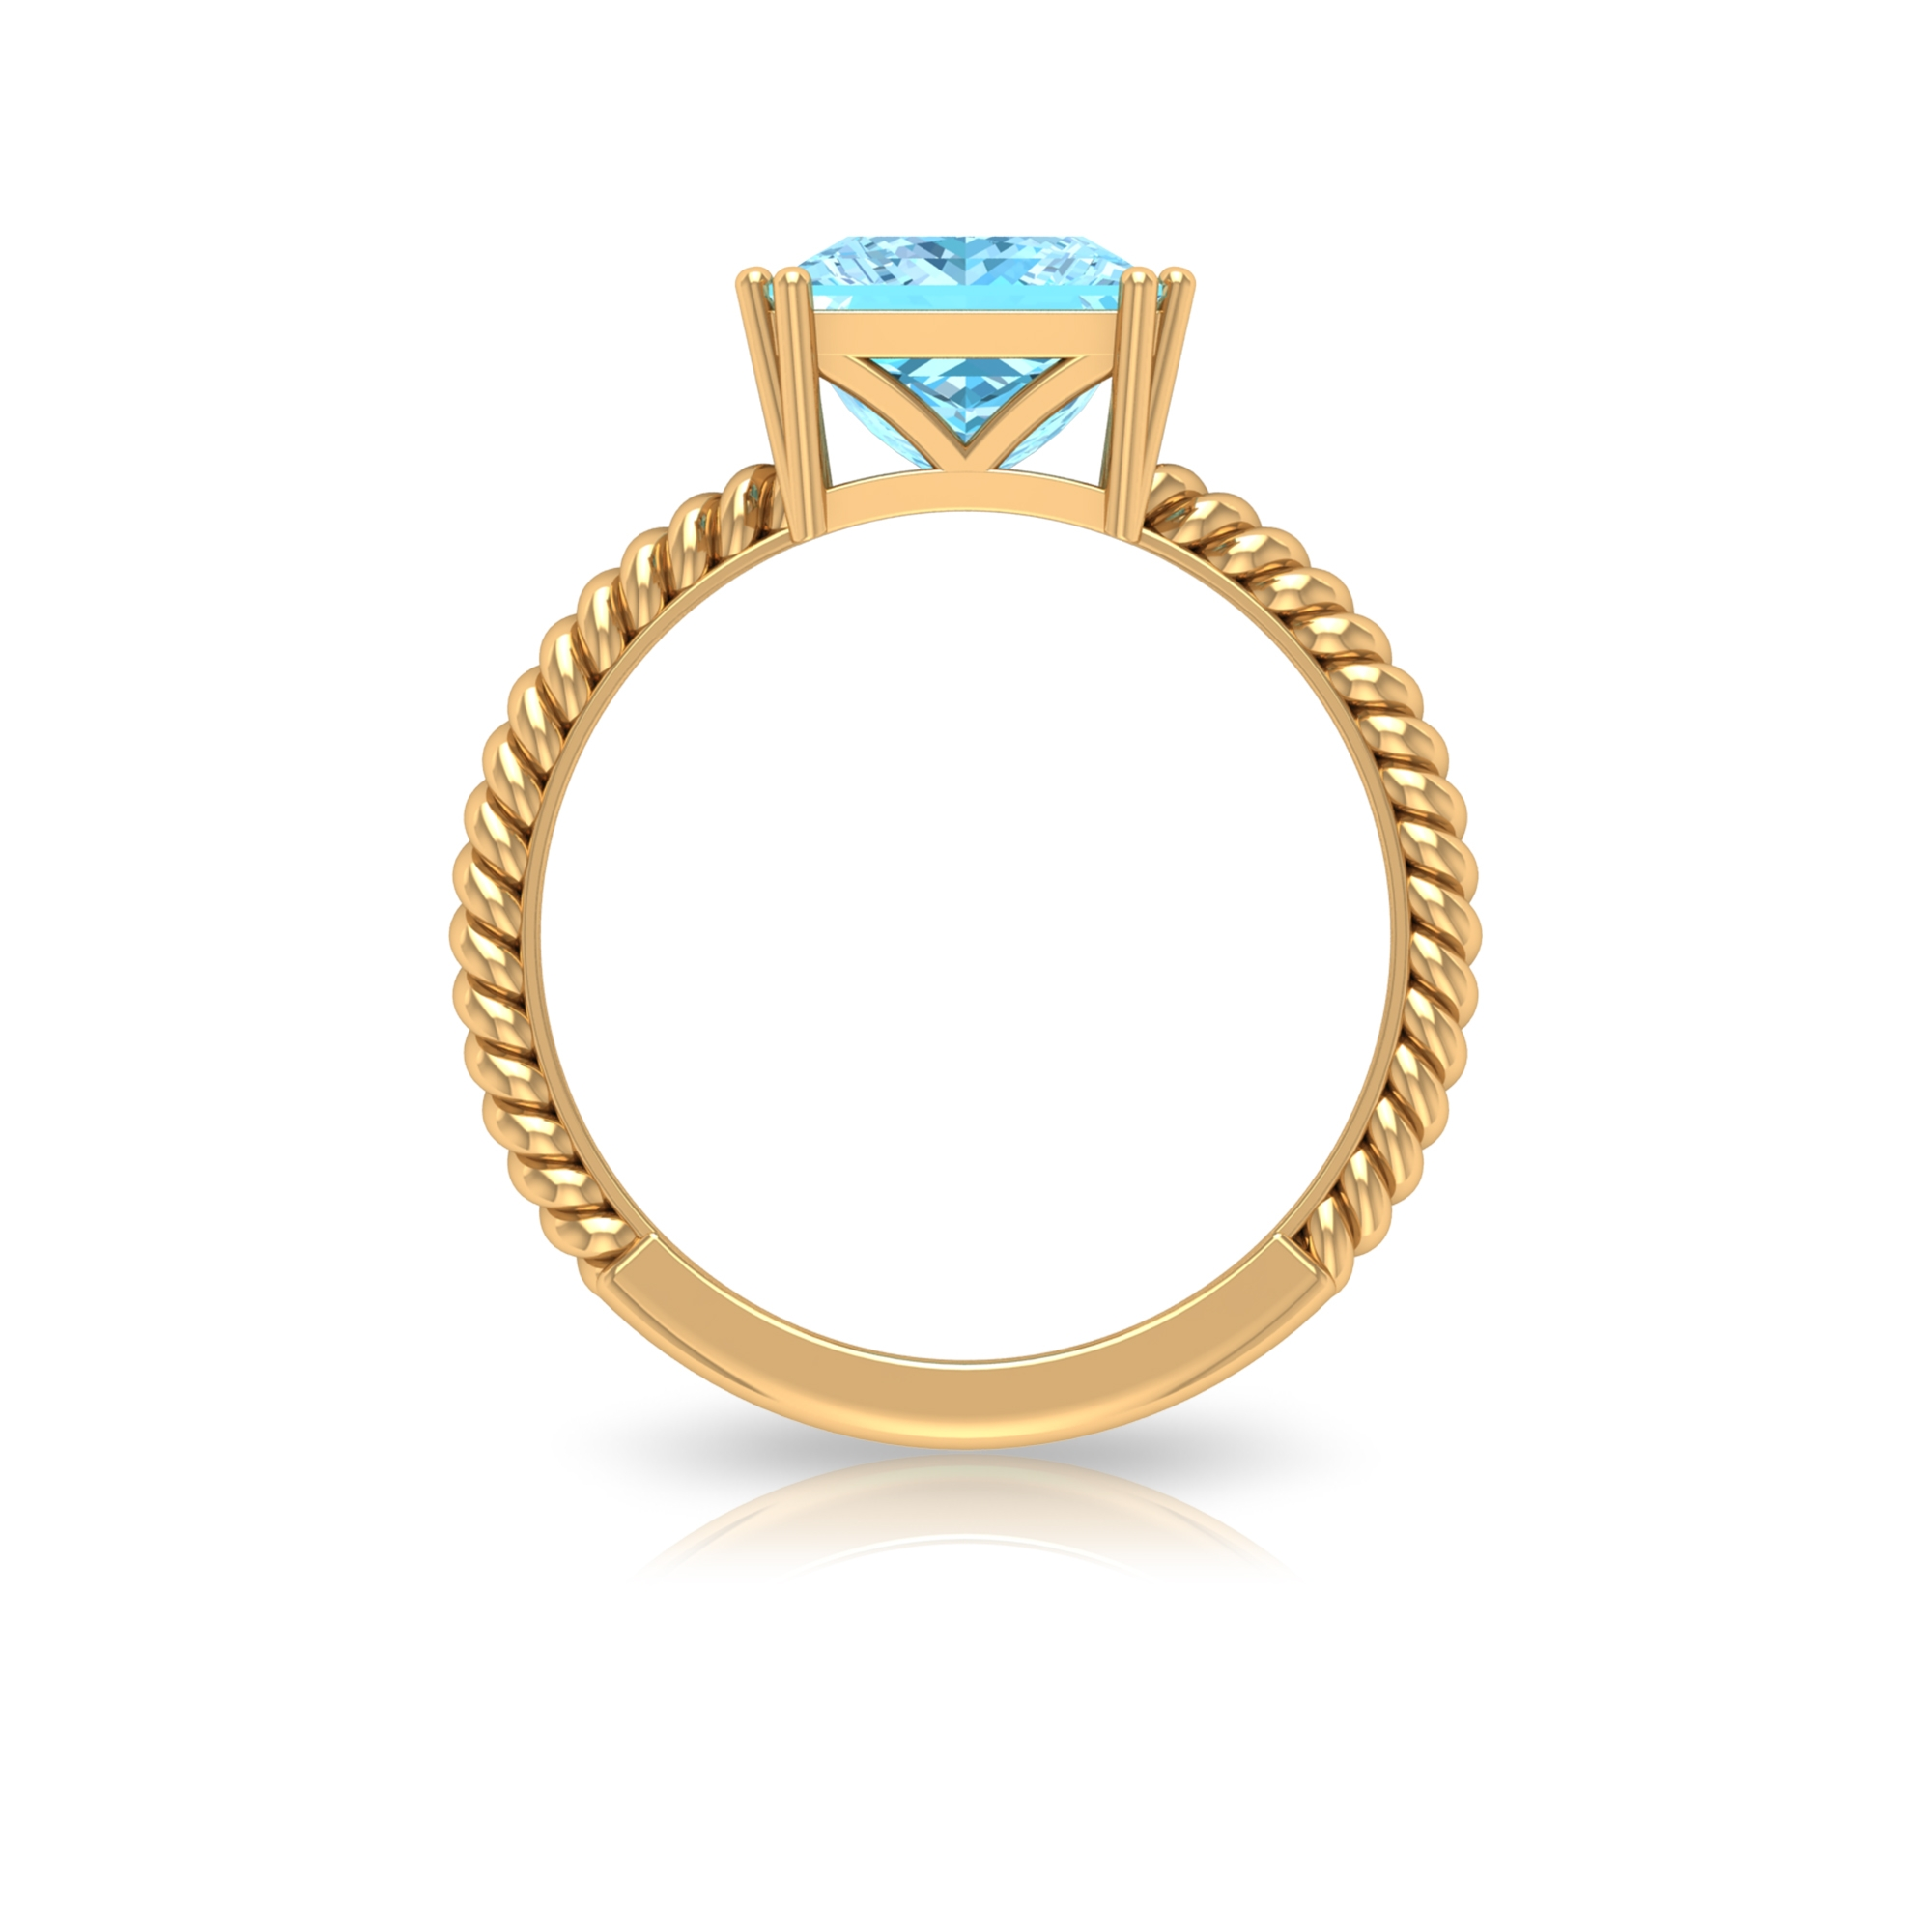 8X8 MM Princess Cut Aquamarine Solitaire Ring in Double Prong Setting with Twisted Rope Details